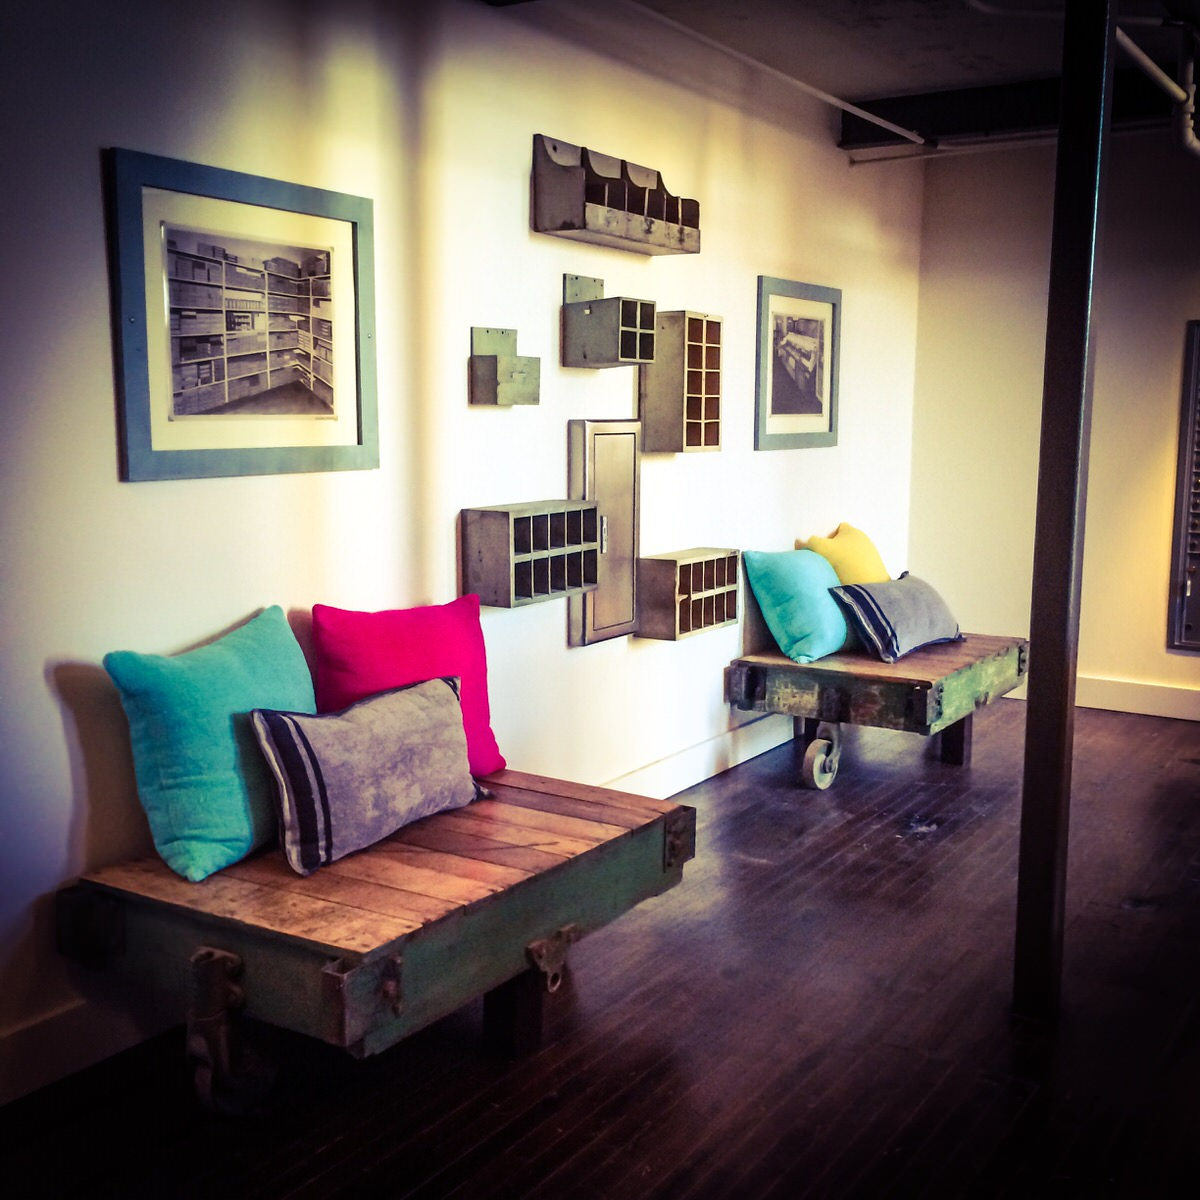 Pressbox Lofts Downtown Memphis, Tennessee - Historic Redevelopment Renovation - 27.jpg